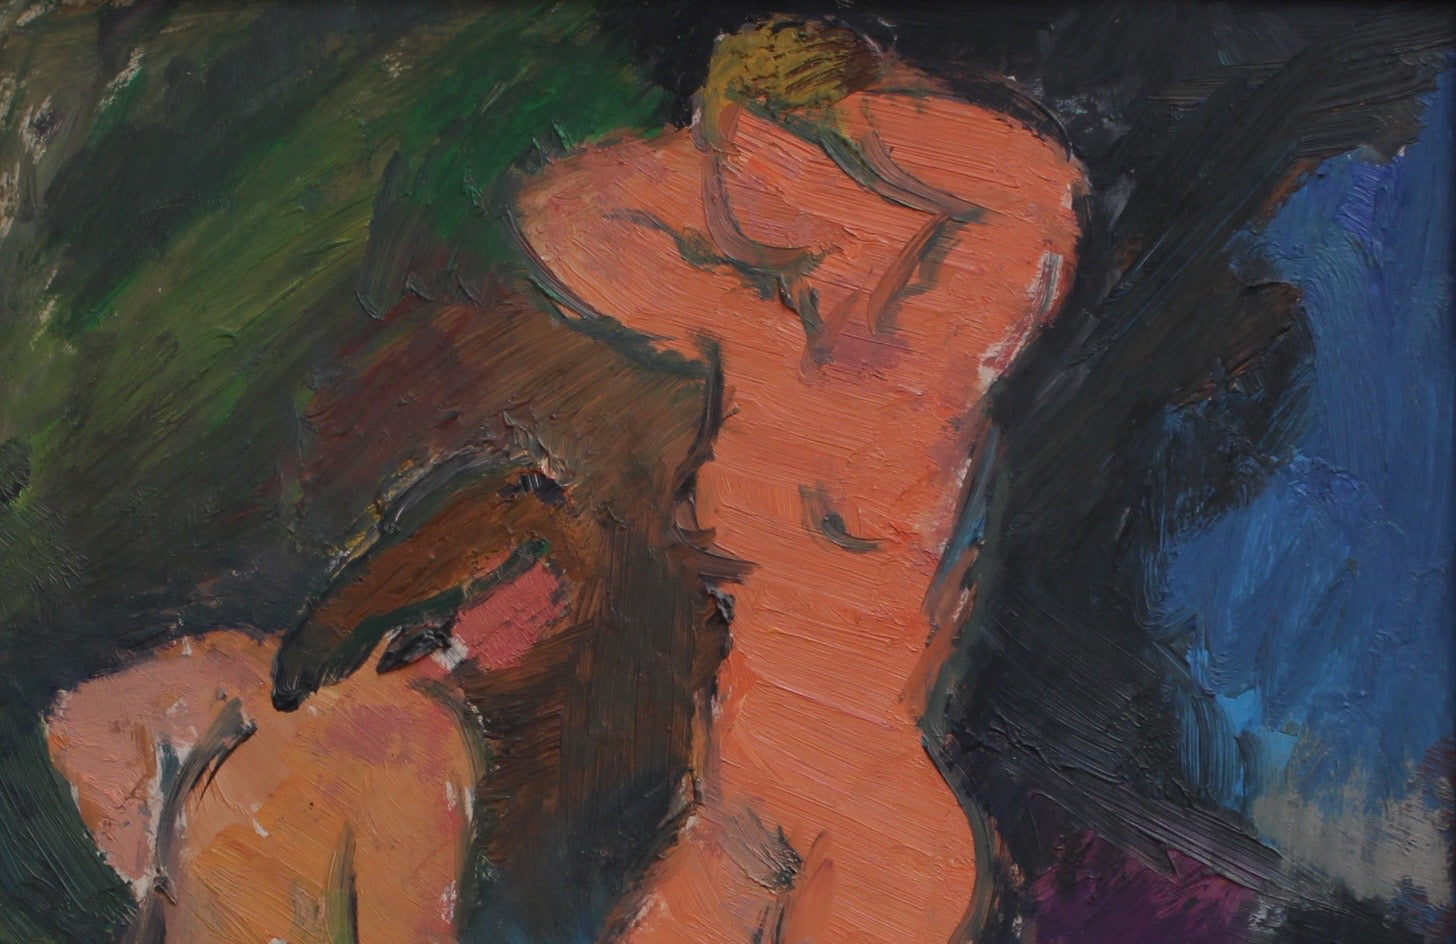 'Three Nude Women' by Louis Toncini (c. 1960s)